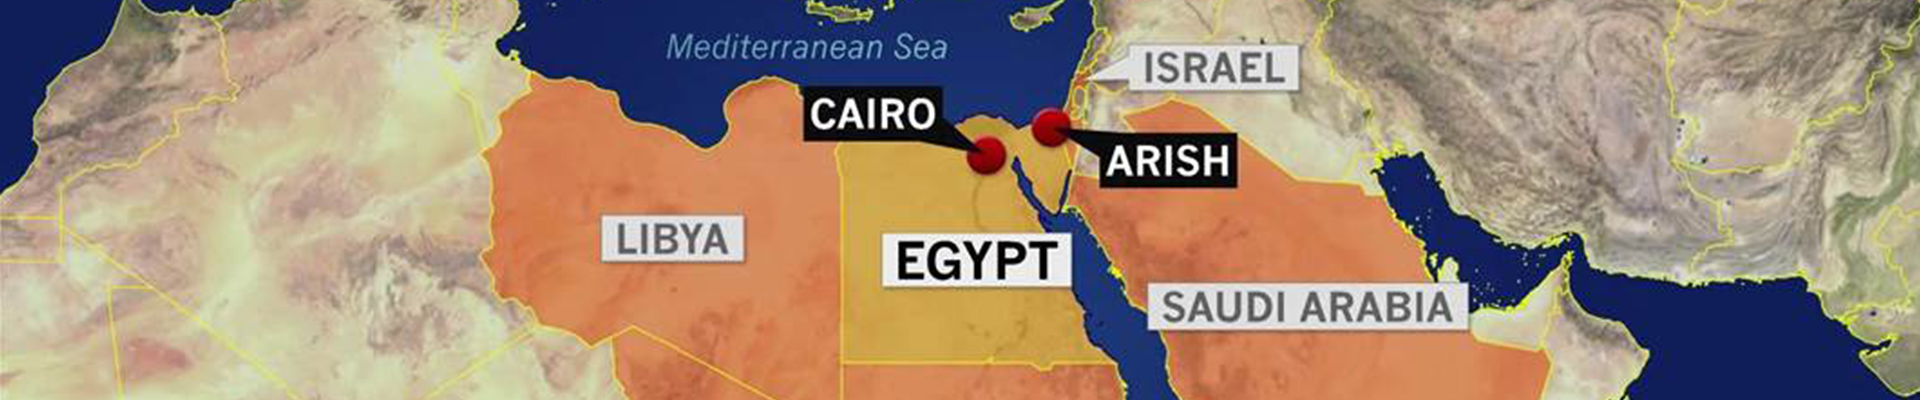 Egypt mosque attack leaves at least 235 dead in Sinai Peninsula